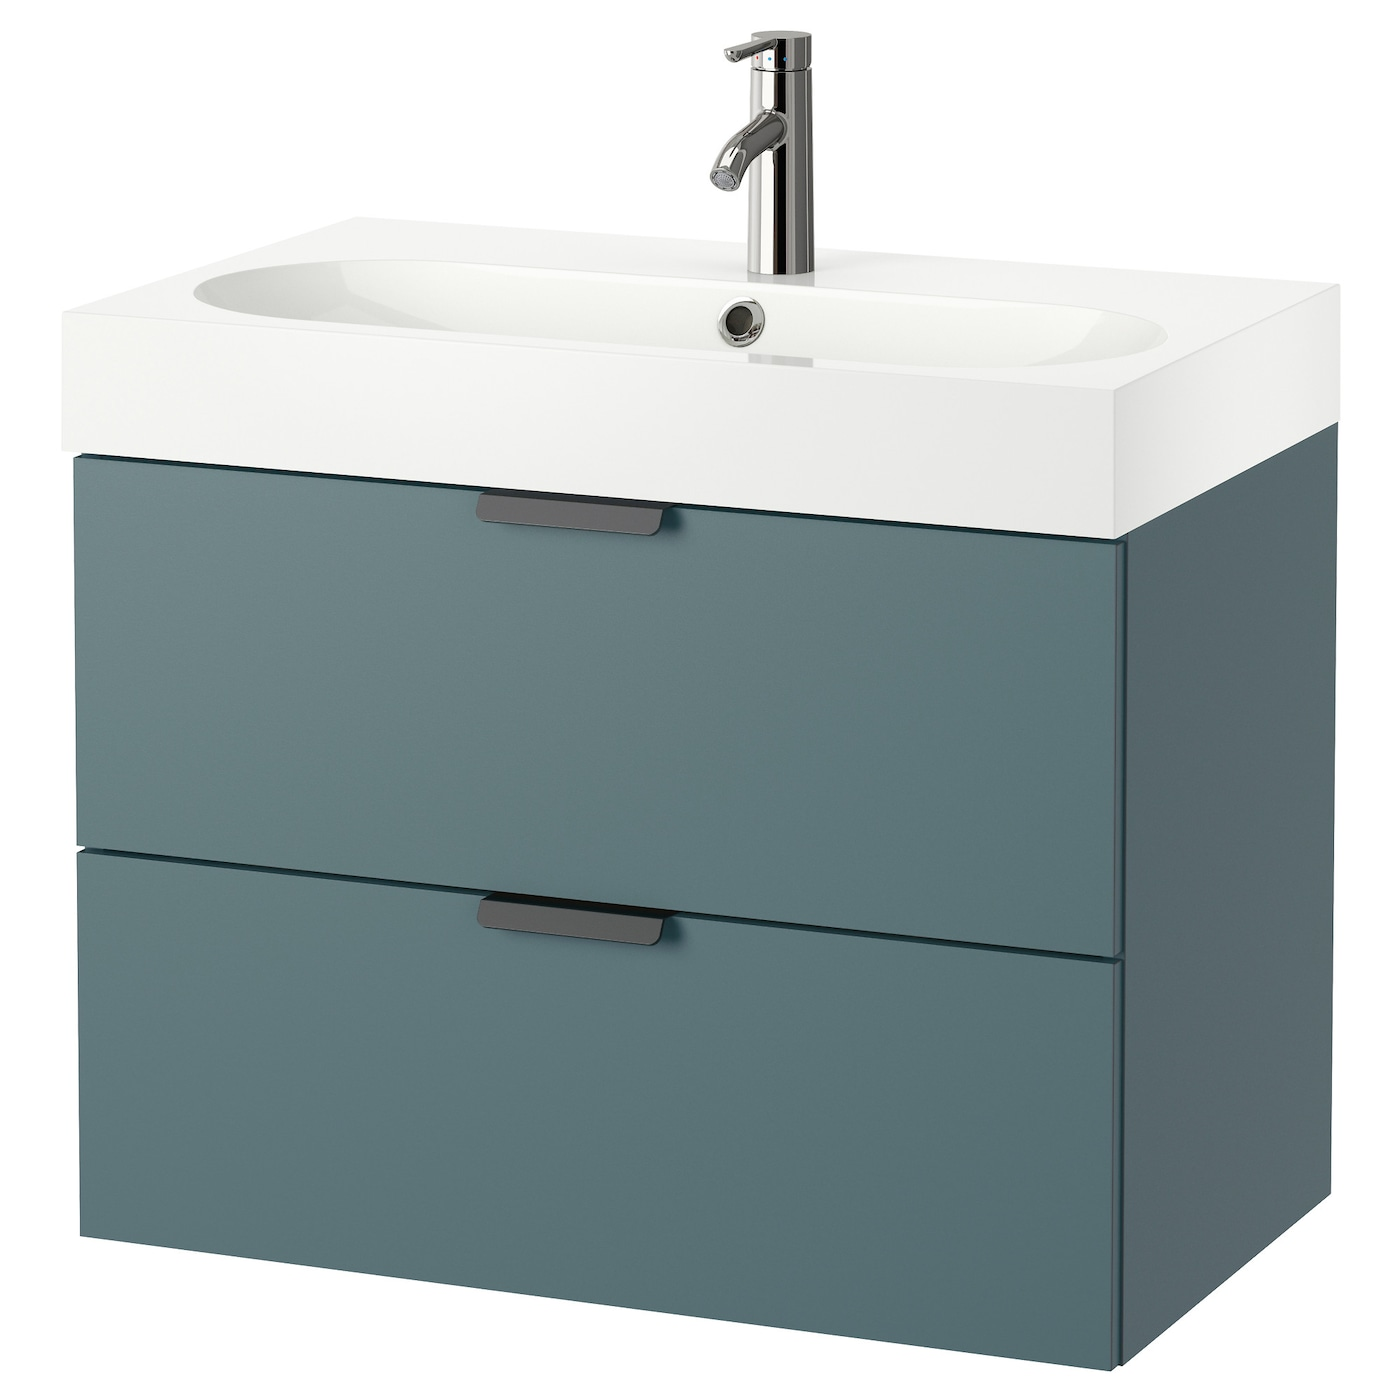 br viken godmorgon wash stand with 2 drawers grey turquoise 80 x 48 x 68 cm ikea. Black Bedroom Furniture Sets. Home Design Ideas